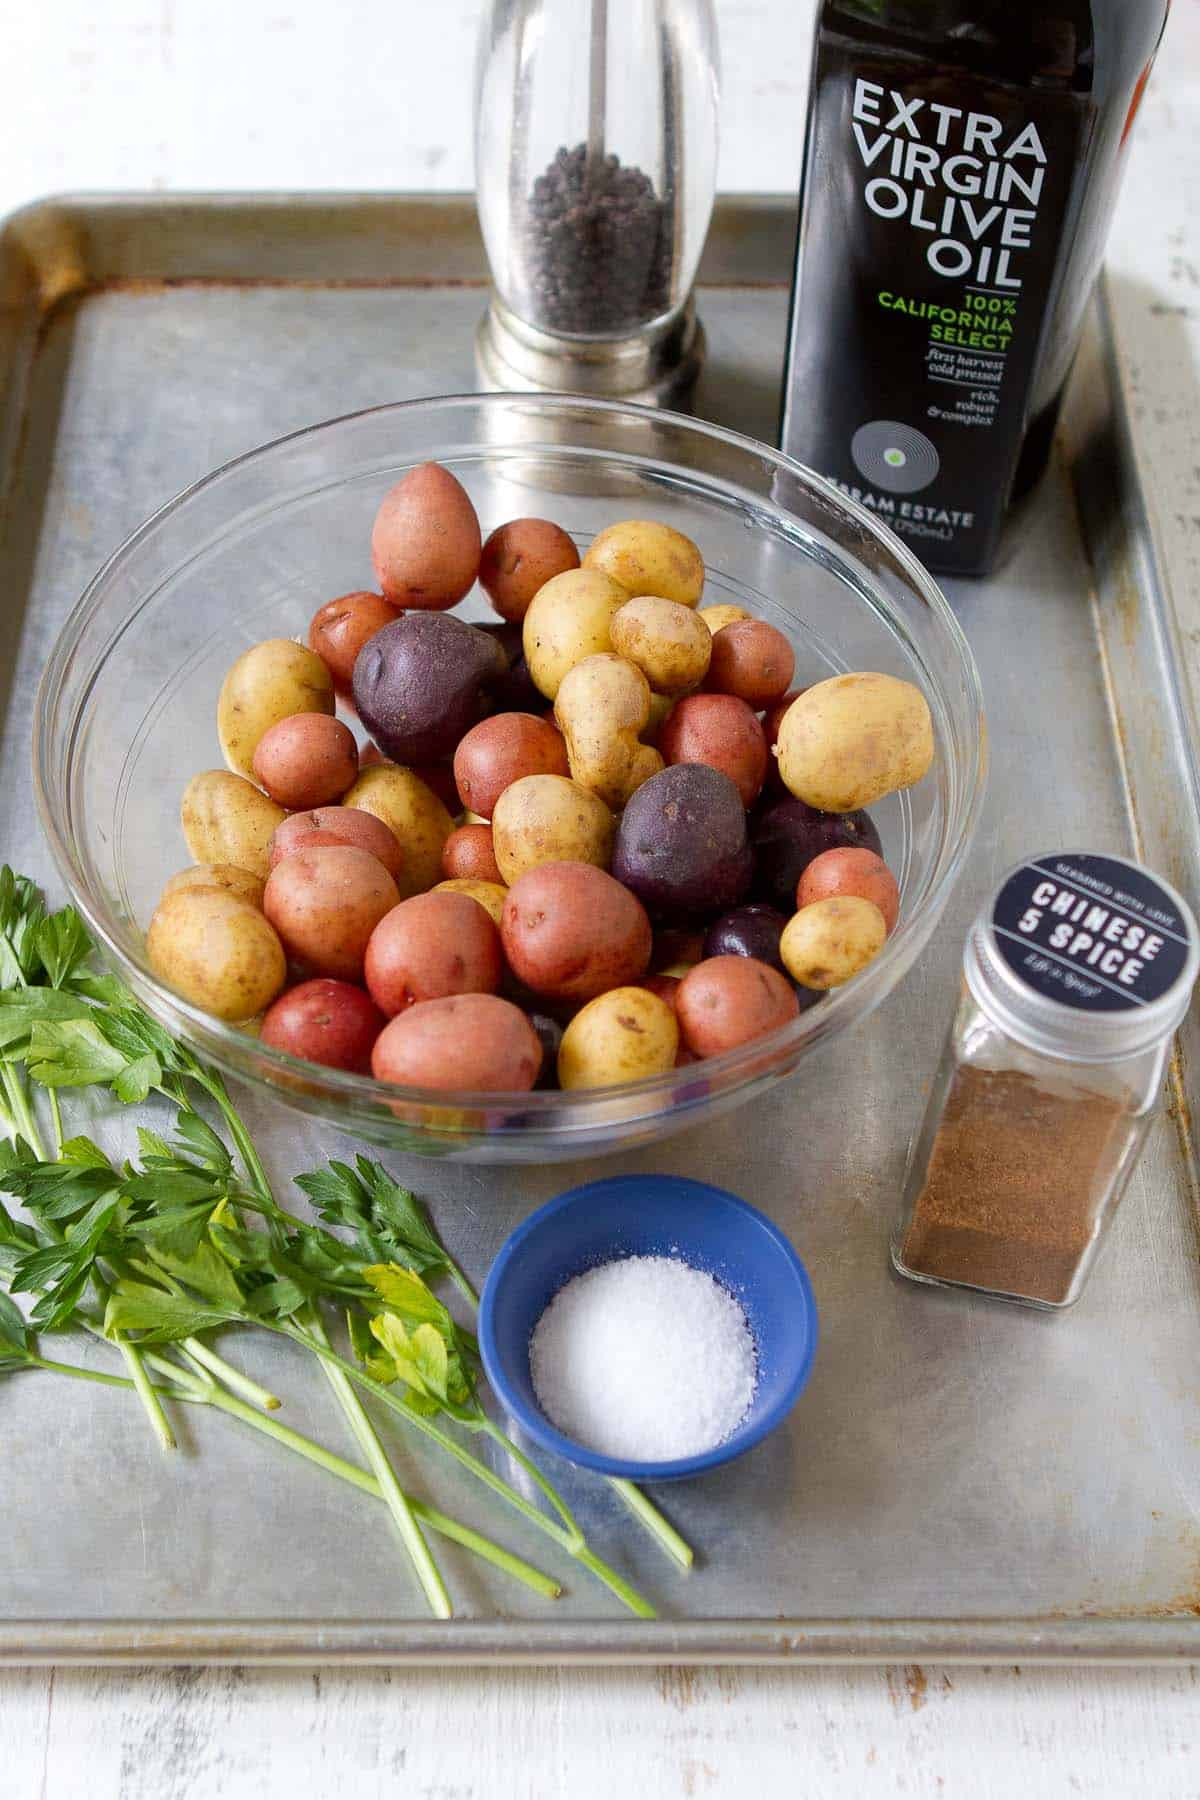 Ingredients for roasted potatoes on a baking sheet.